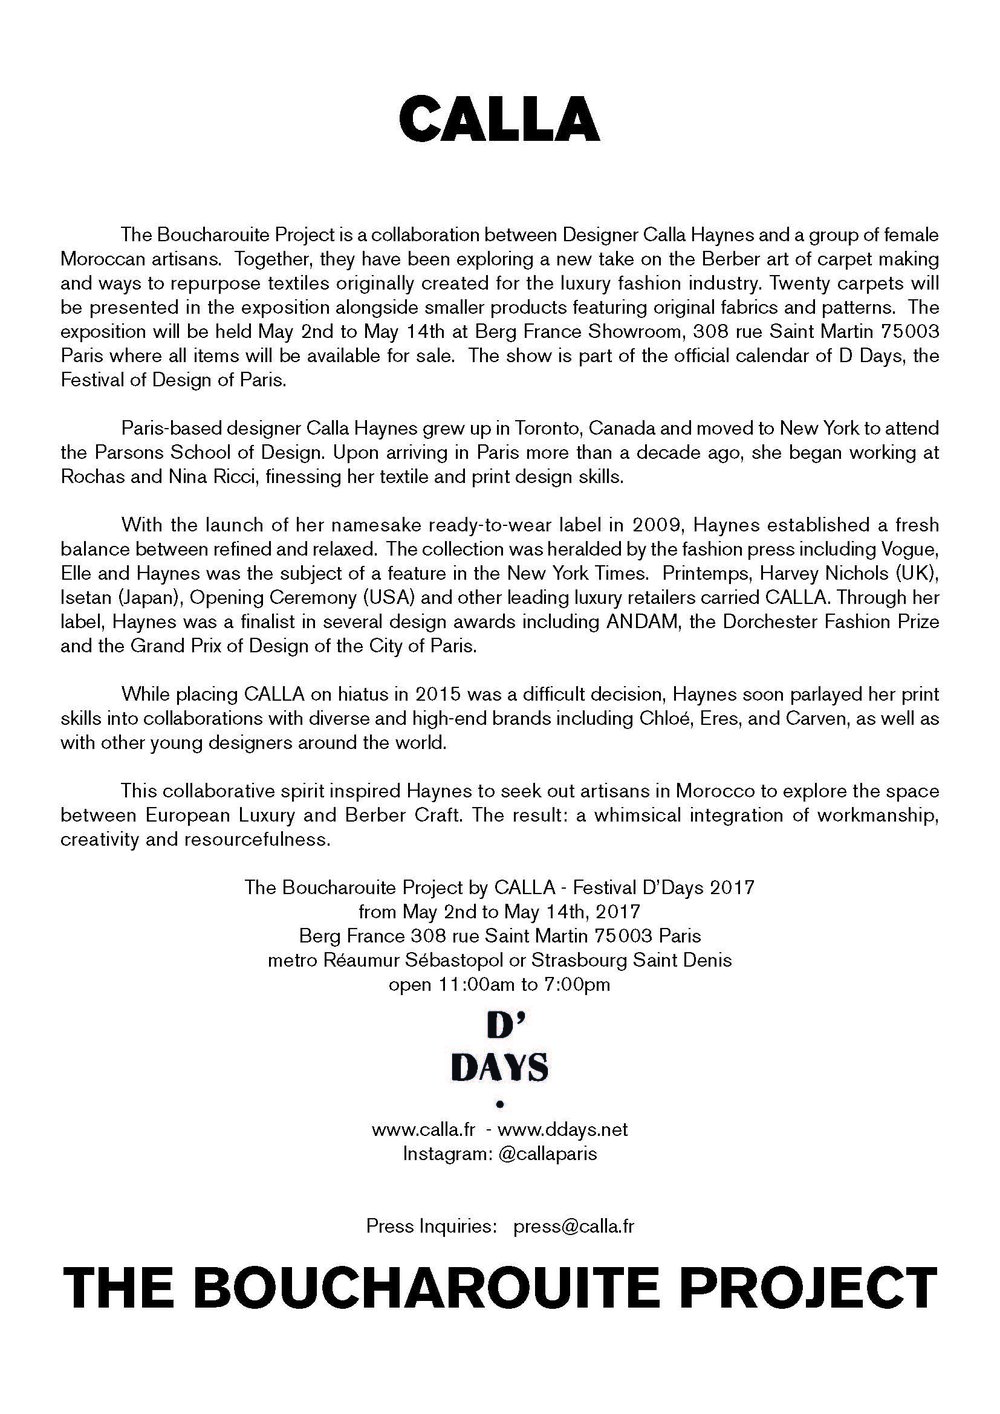 PRESS RELEASE PAGE 1.jpg